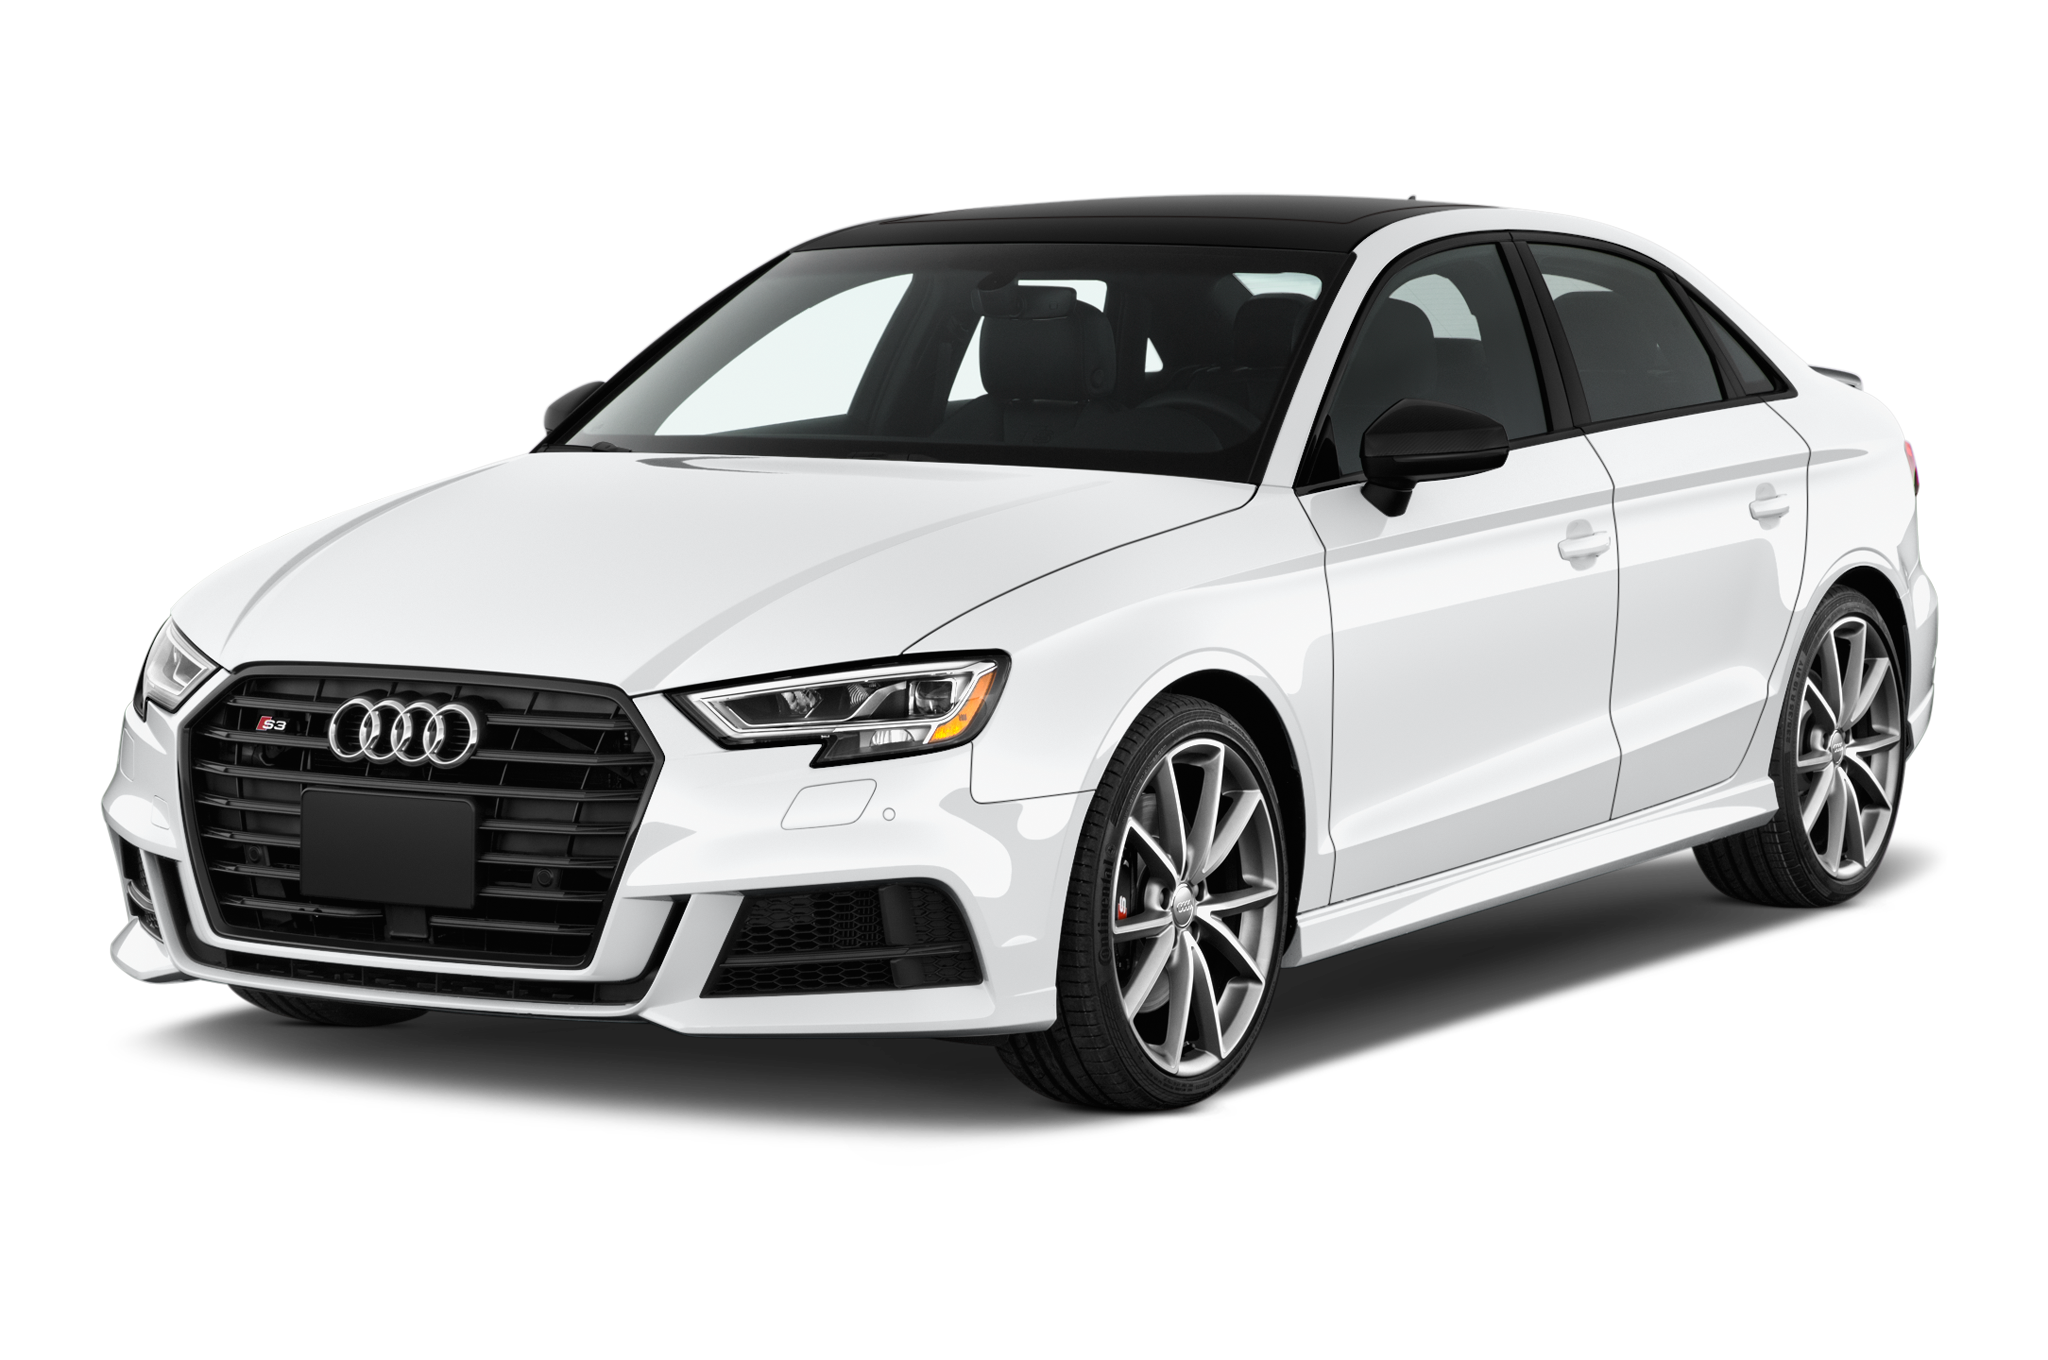 Elegant Audi Cars for Sale Near Me